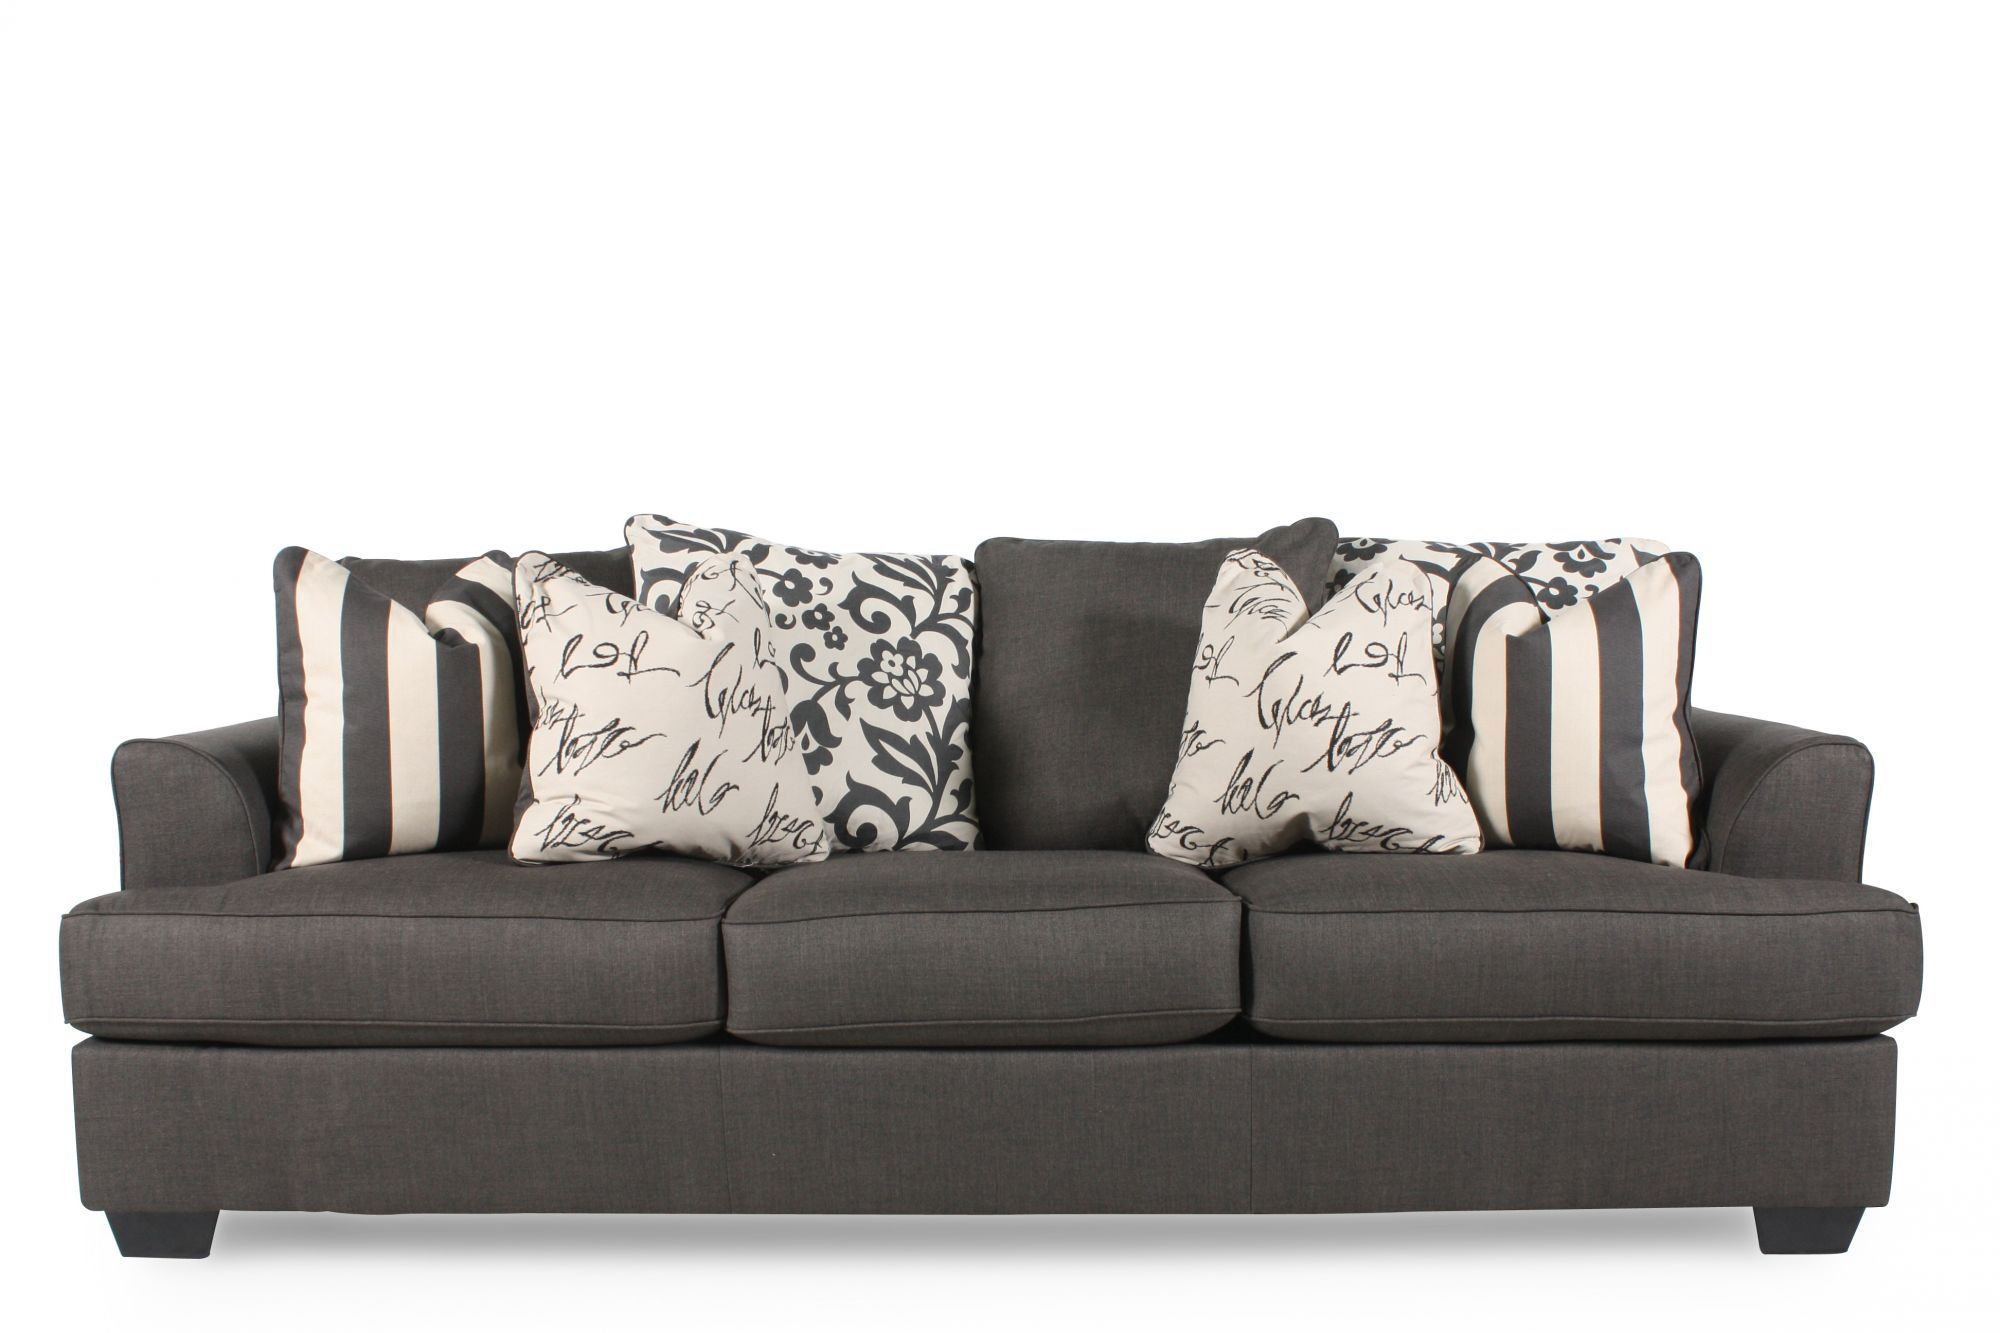 Ashley 166 alenya sofa